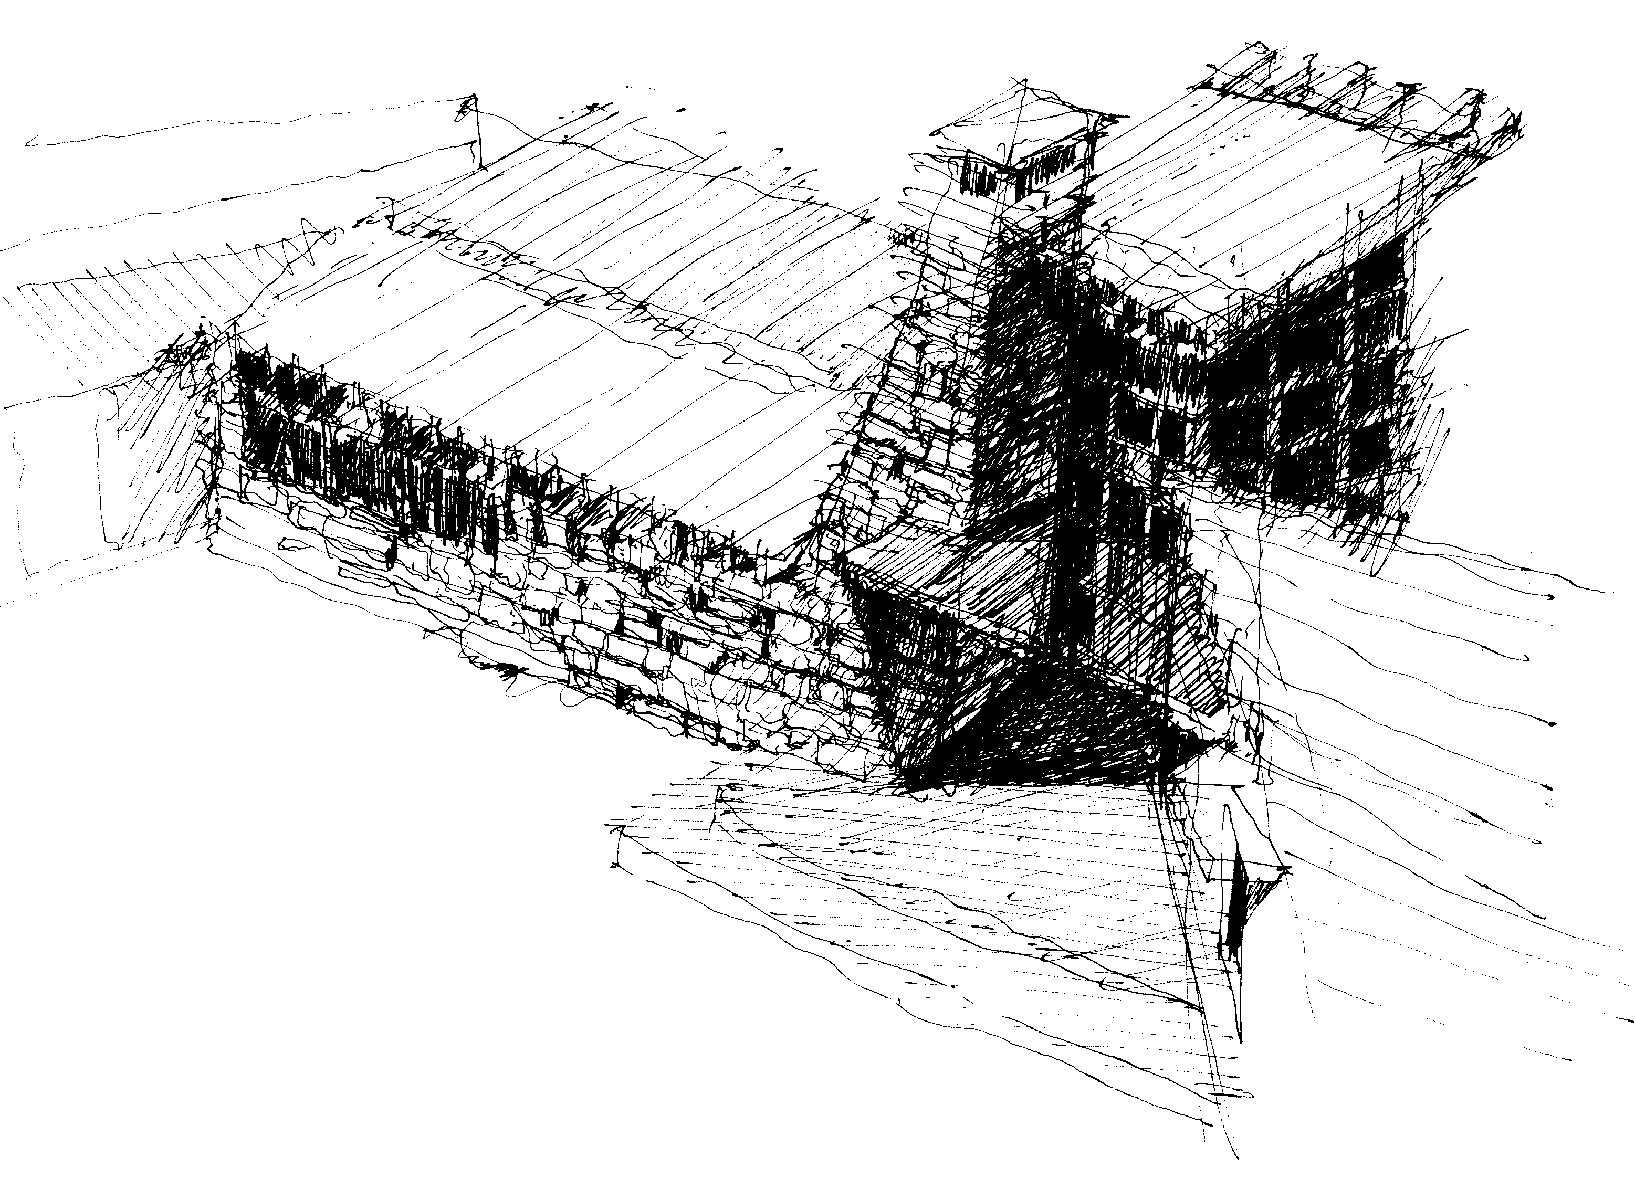 Sketch of Entry